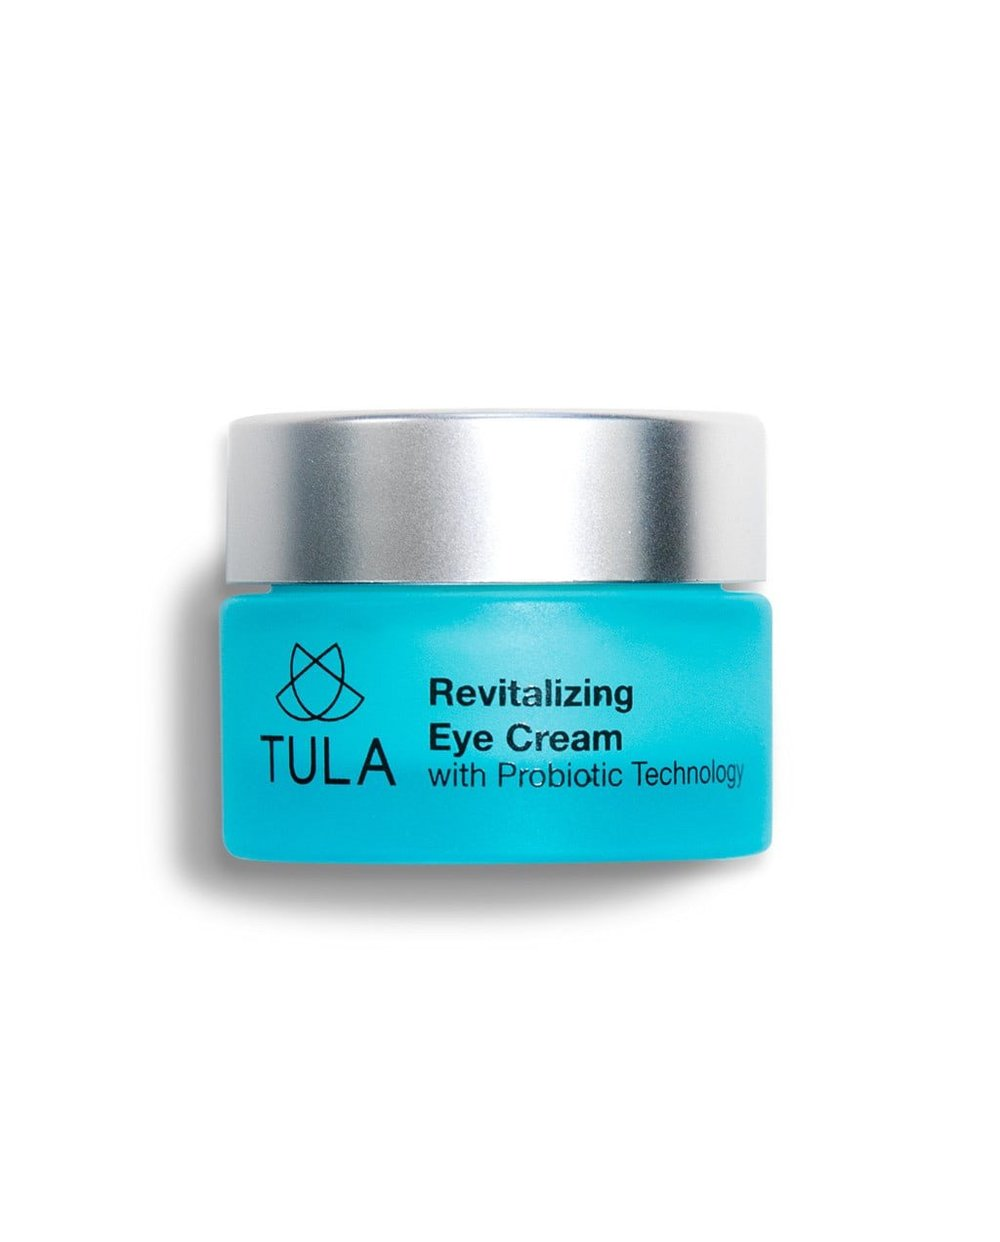 tula-revitalizing-eye-cream.jpg